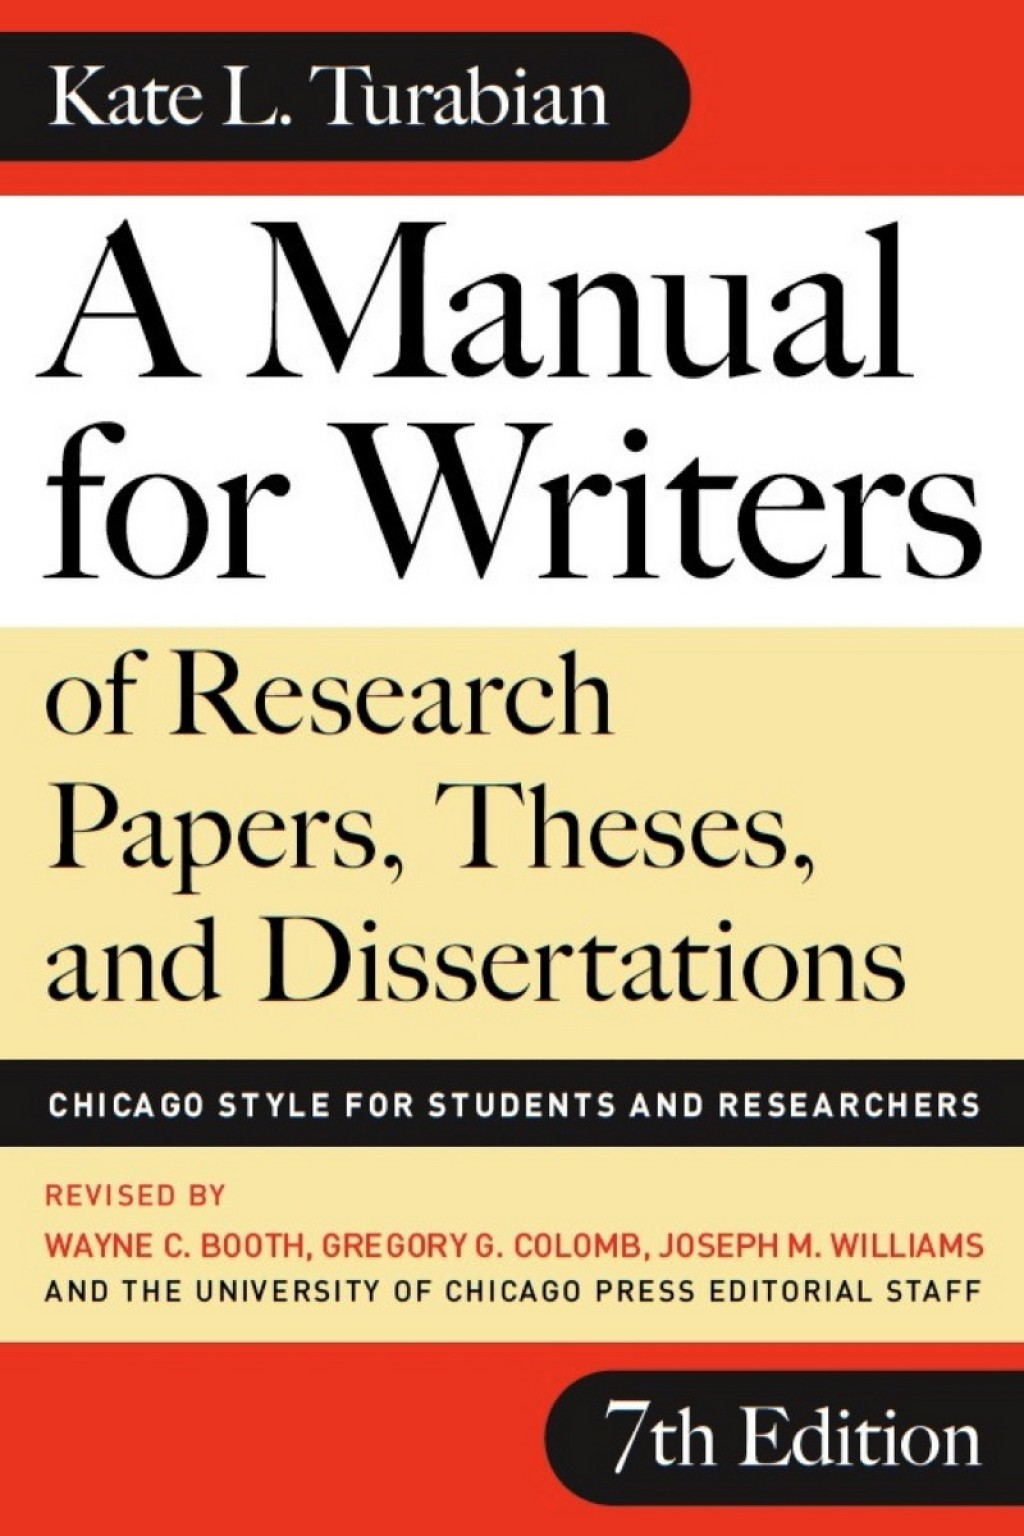 008 Manual For Writers Of Researchs Theses And Dissertations Frontcover Magnificent Research Papers A 8th Pdf Amazon Large